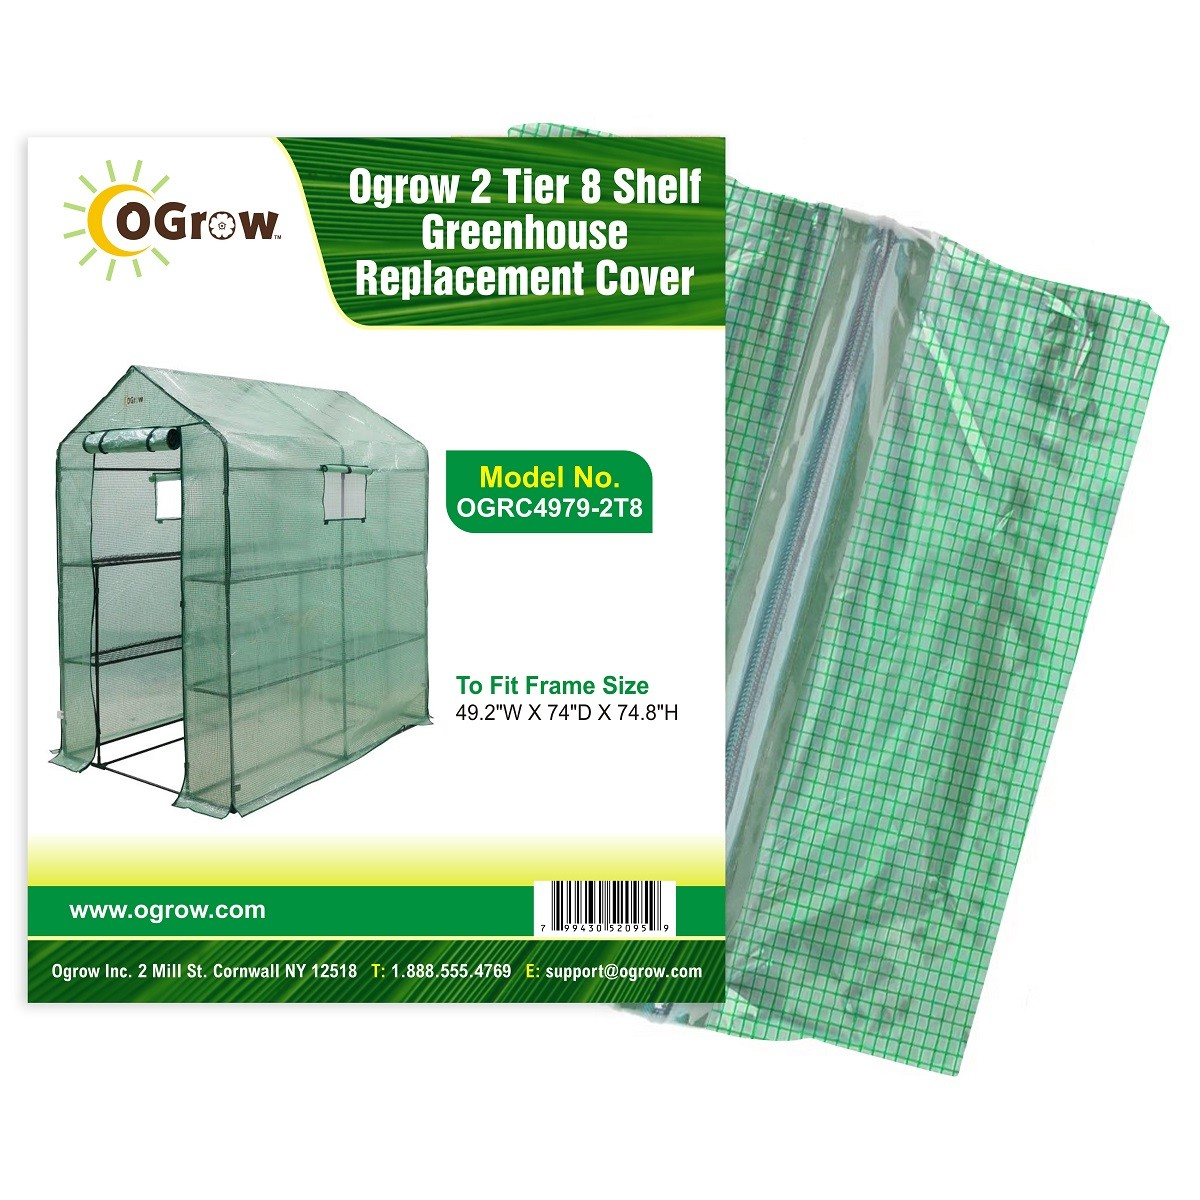 "2 Tier 8 Shelf Polyethylene Plastic Greenhouse Replacement Cover - 49"" W x 74"" D x 75"" H - Green"